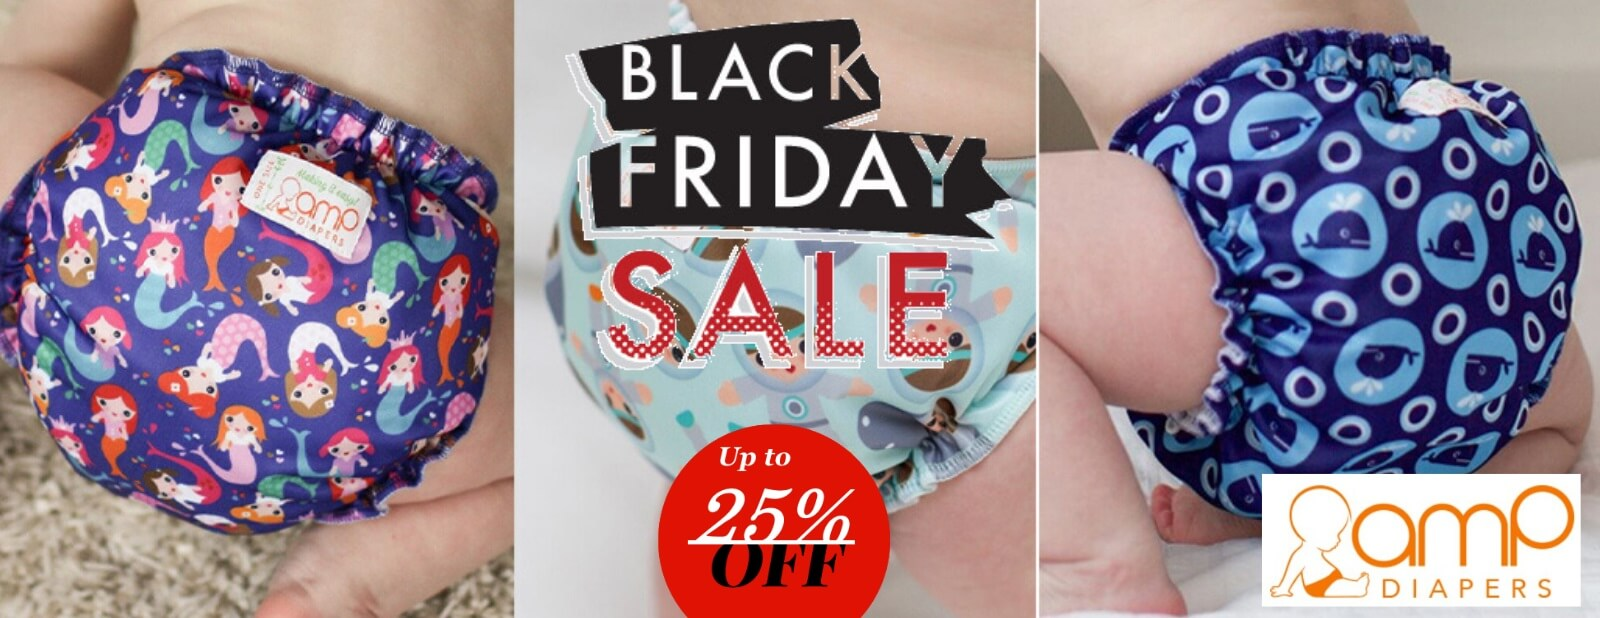 amp cloth diapers black friday sale